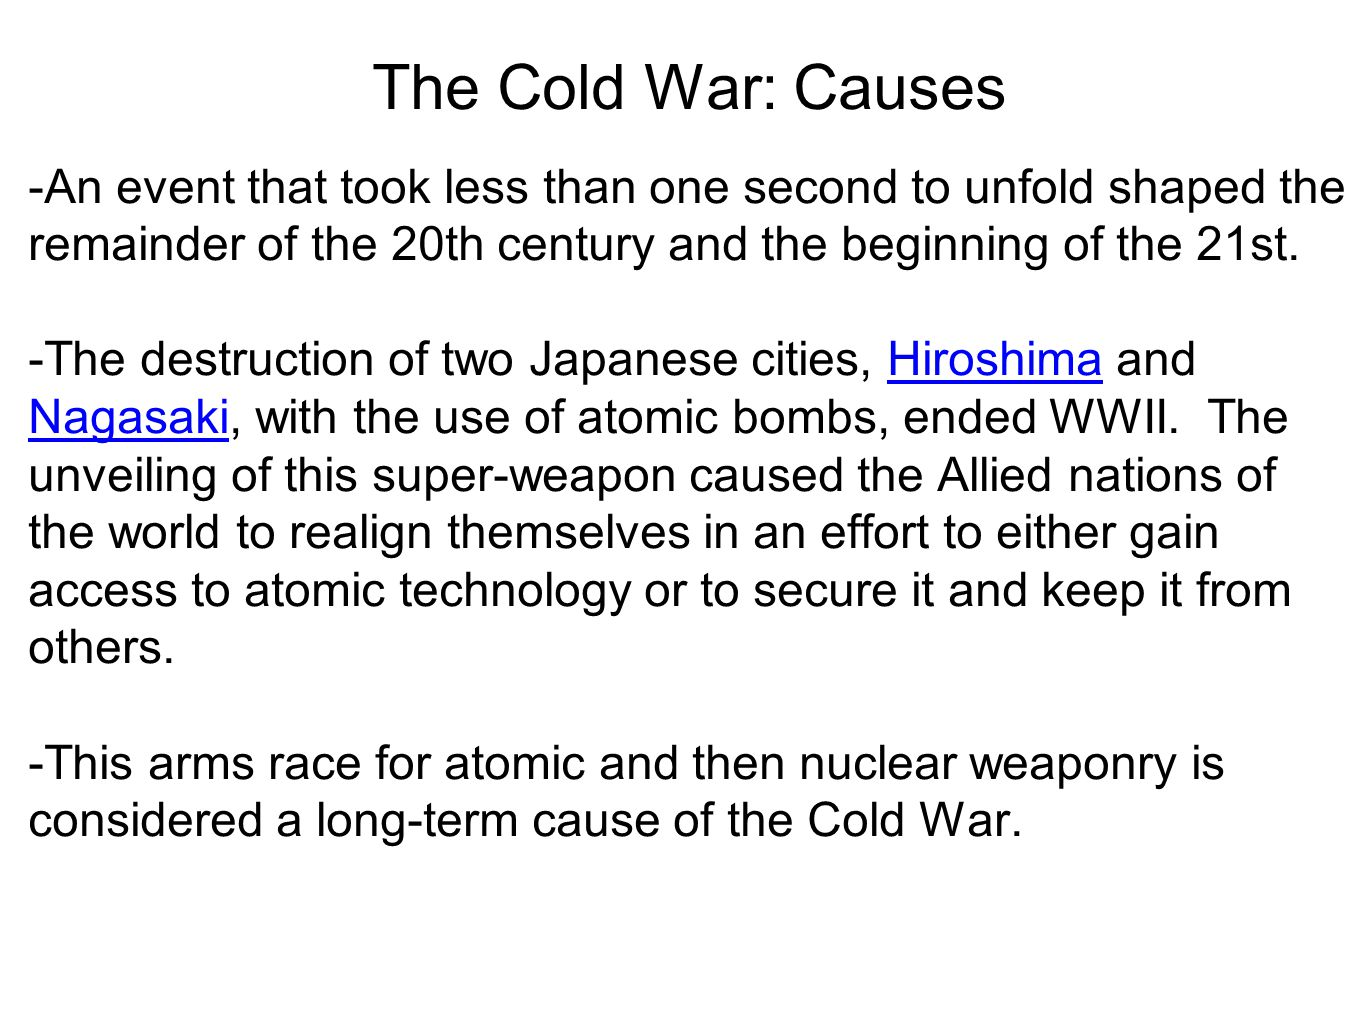 causes of the second world war essay Essay about cold war: causes & effects the only reason why they were on the same side in the second world war was not because they supported or trusted one.